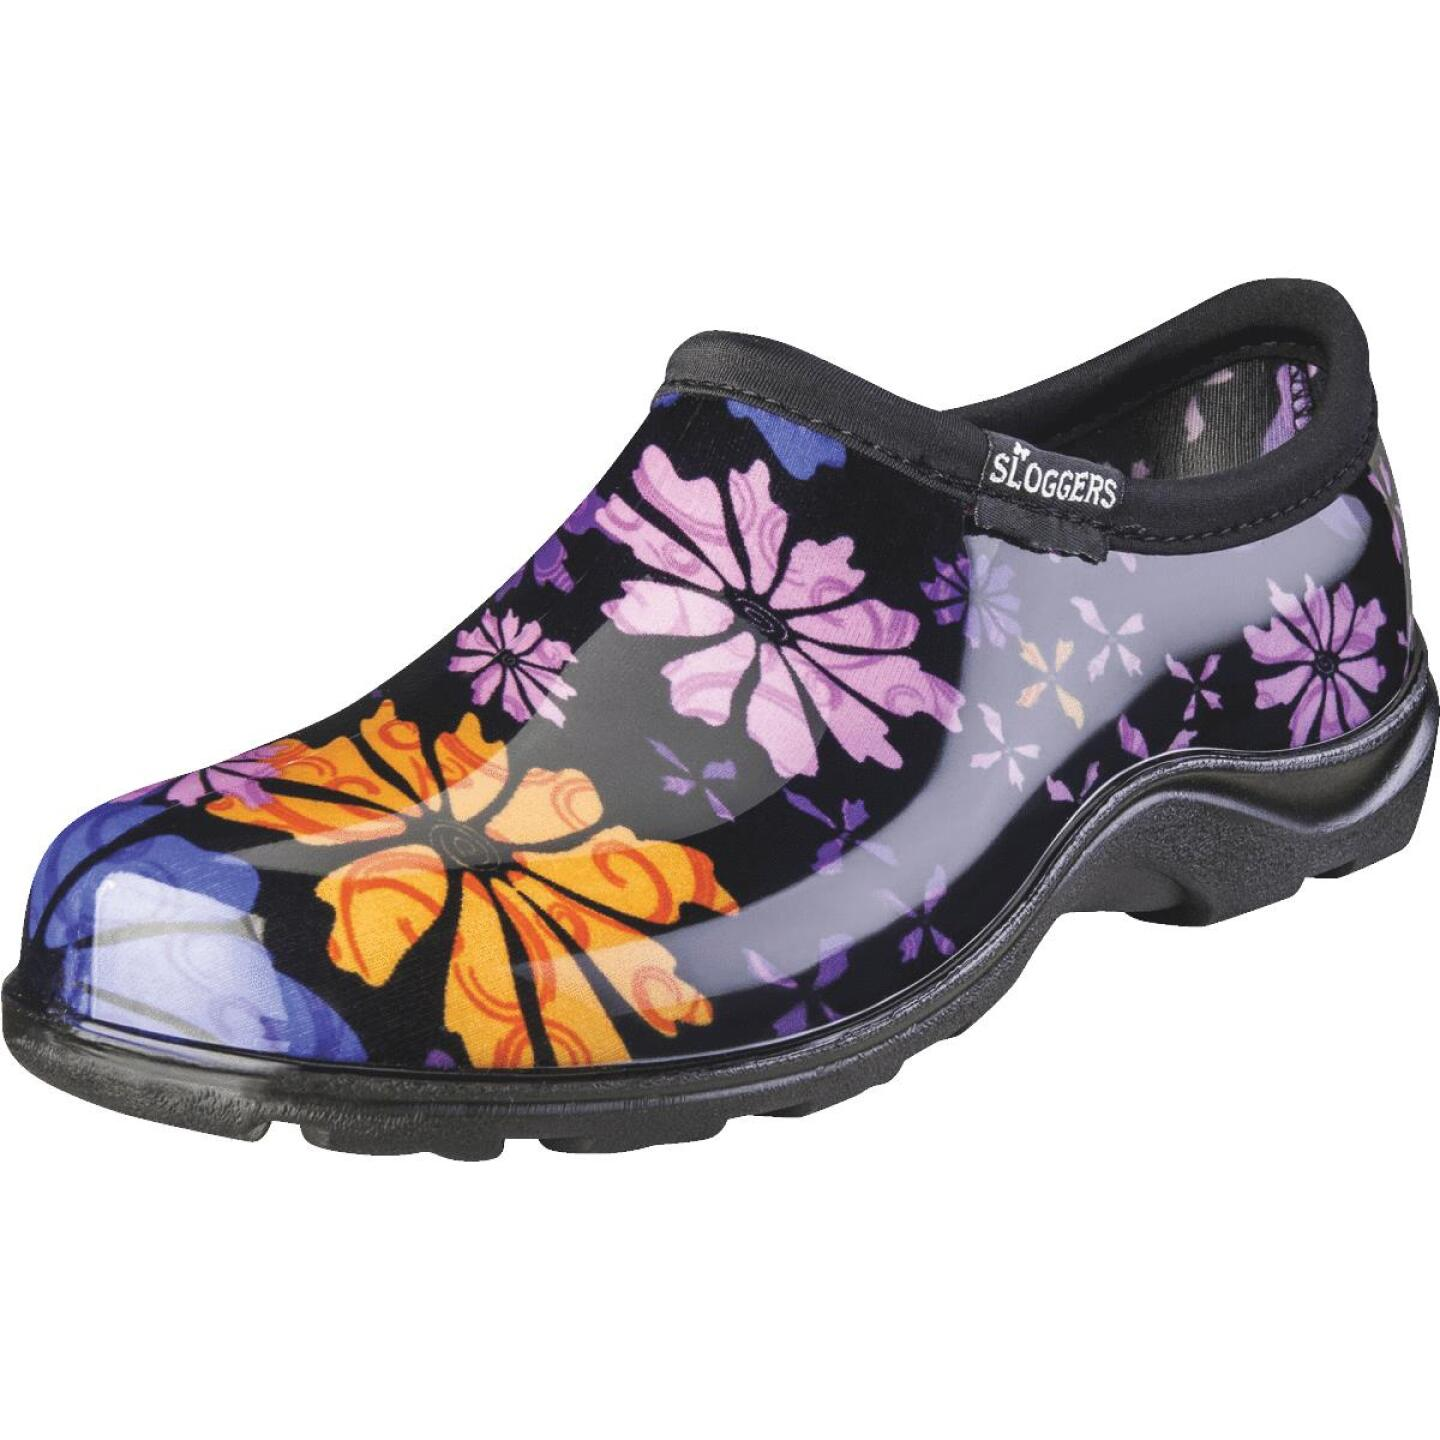 Sloggers Women's Size 8 Black w/Flower Design Garden Shoe Image 1